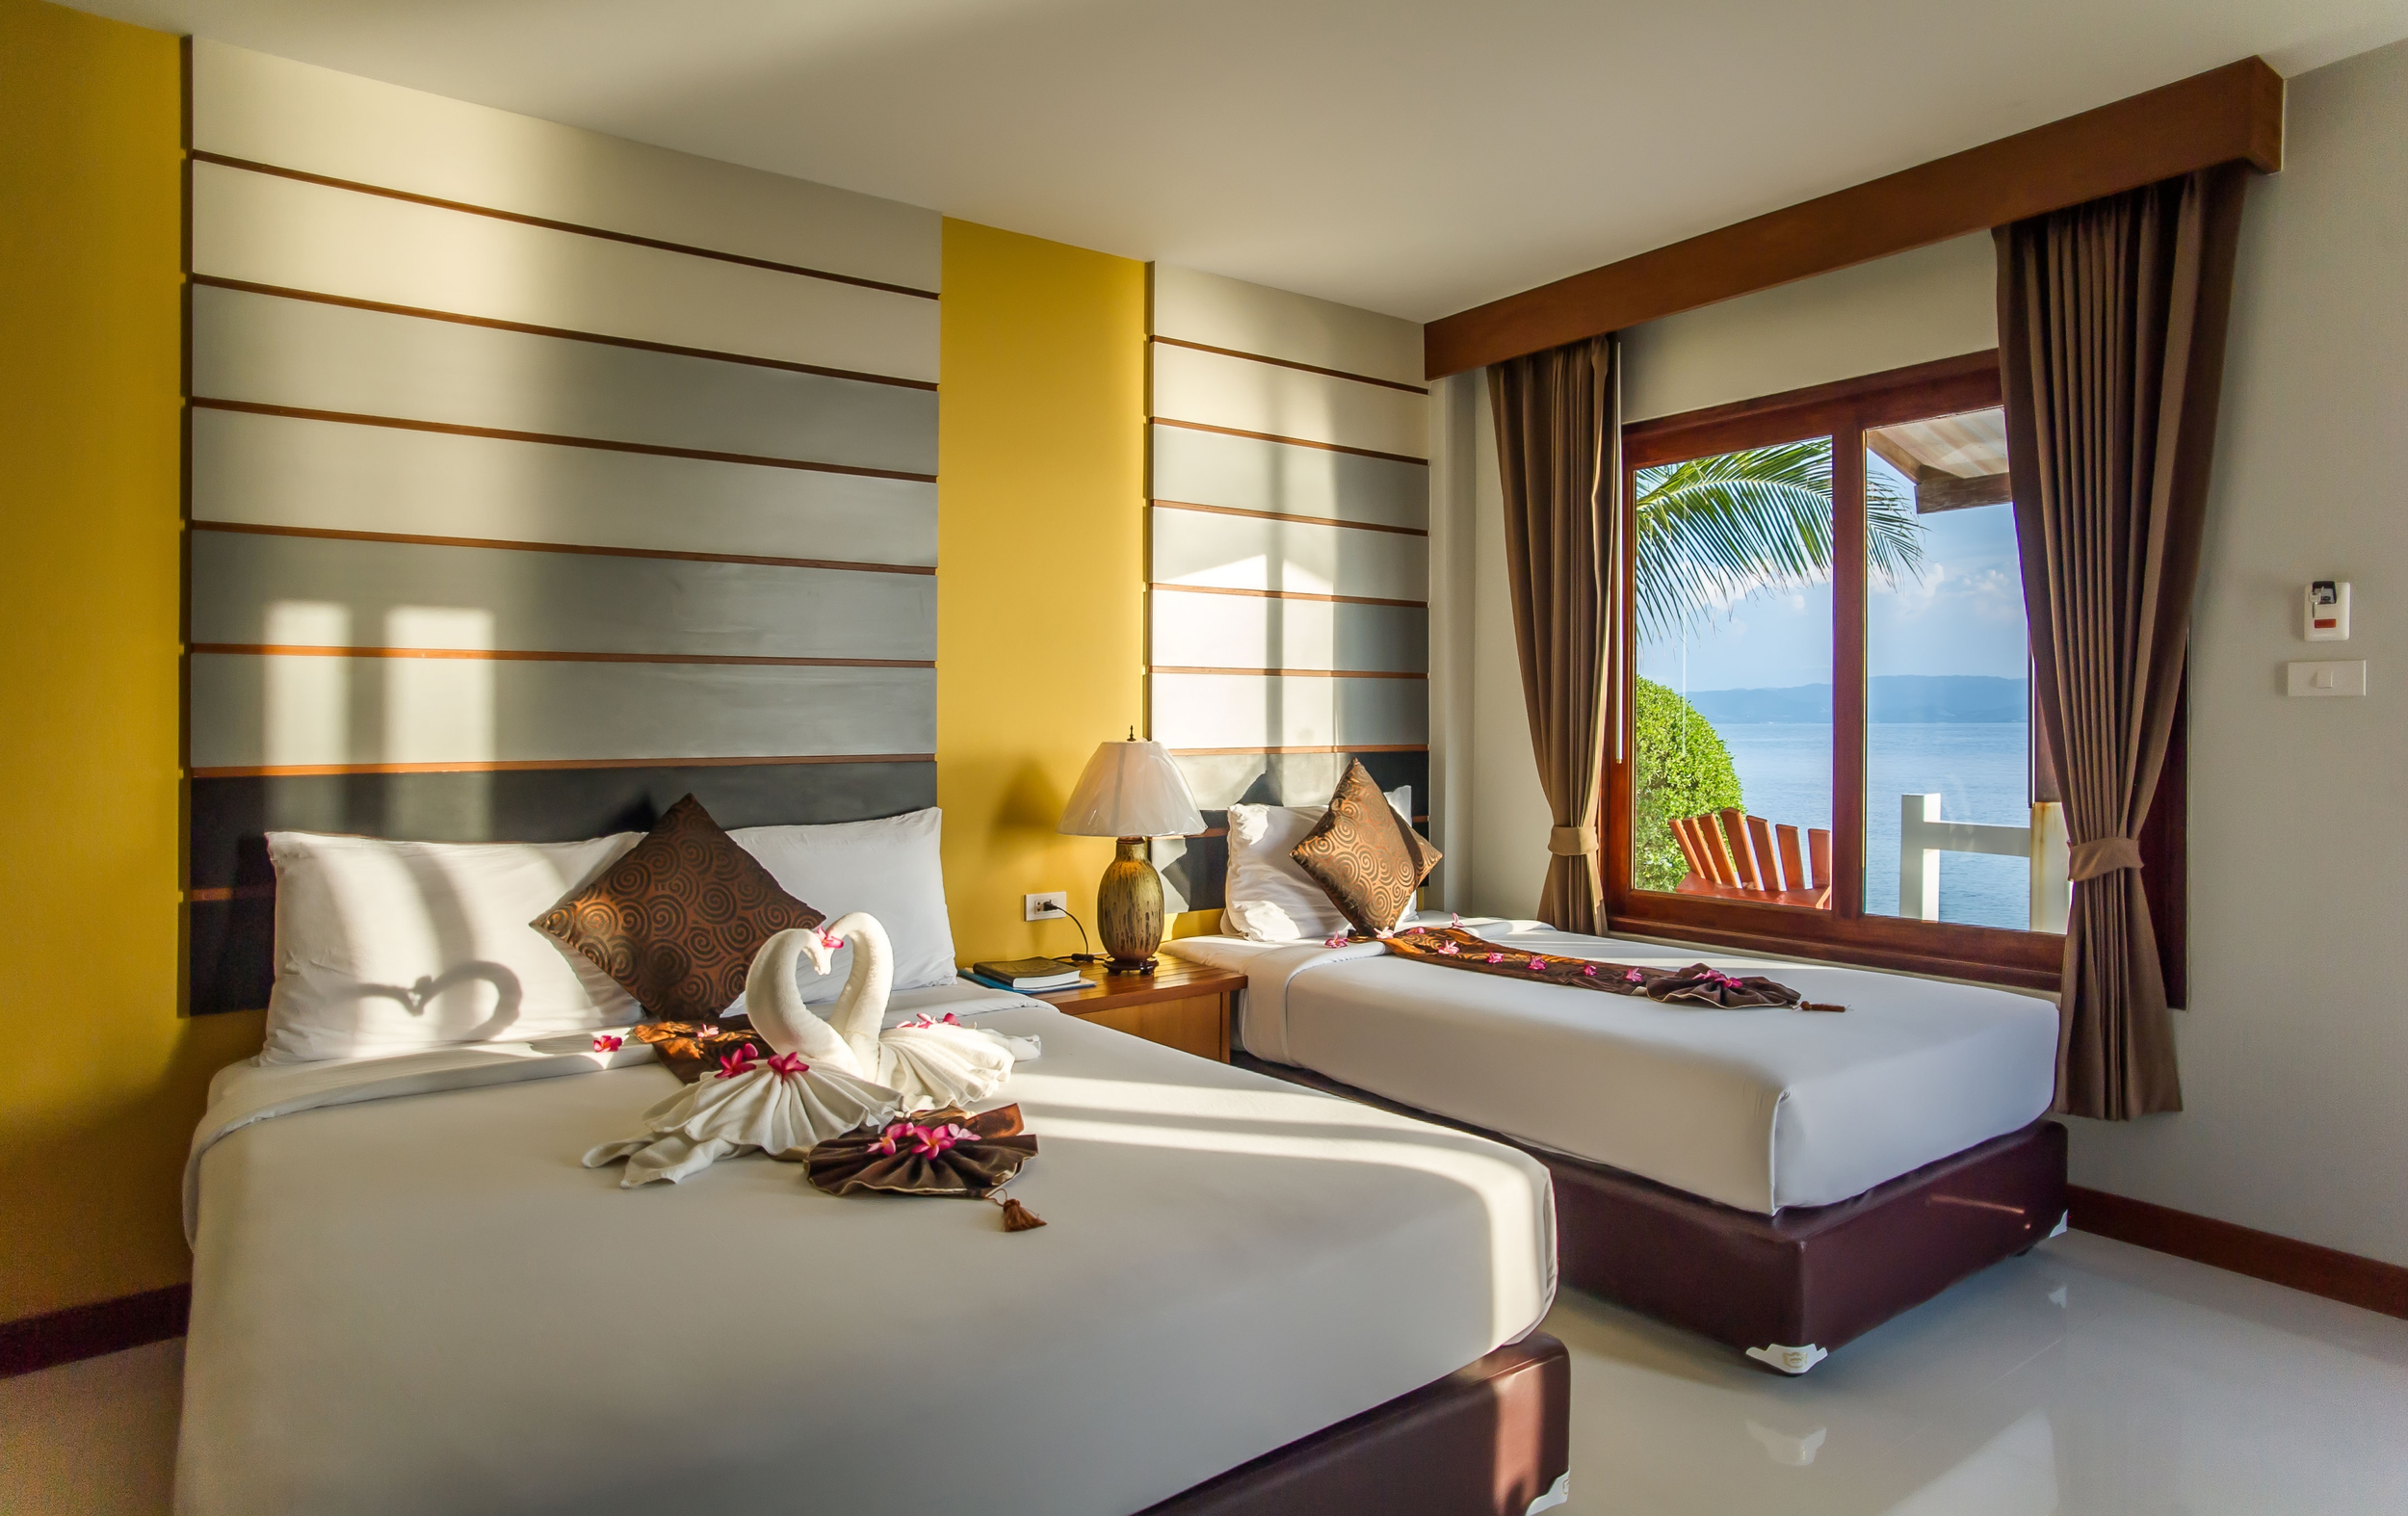 The Neptune's Villa is located on Had Rin Nai, the quiet and serene sunset beach on the southern side of Had Rin town. This side of Had Rin is well known for its peace and tranquility, with Neptune's Villa right in the heart of the village that borders this beach.